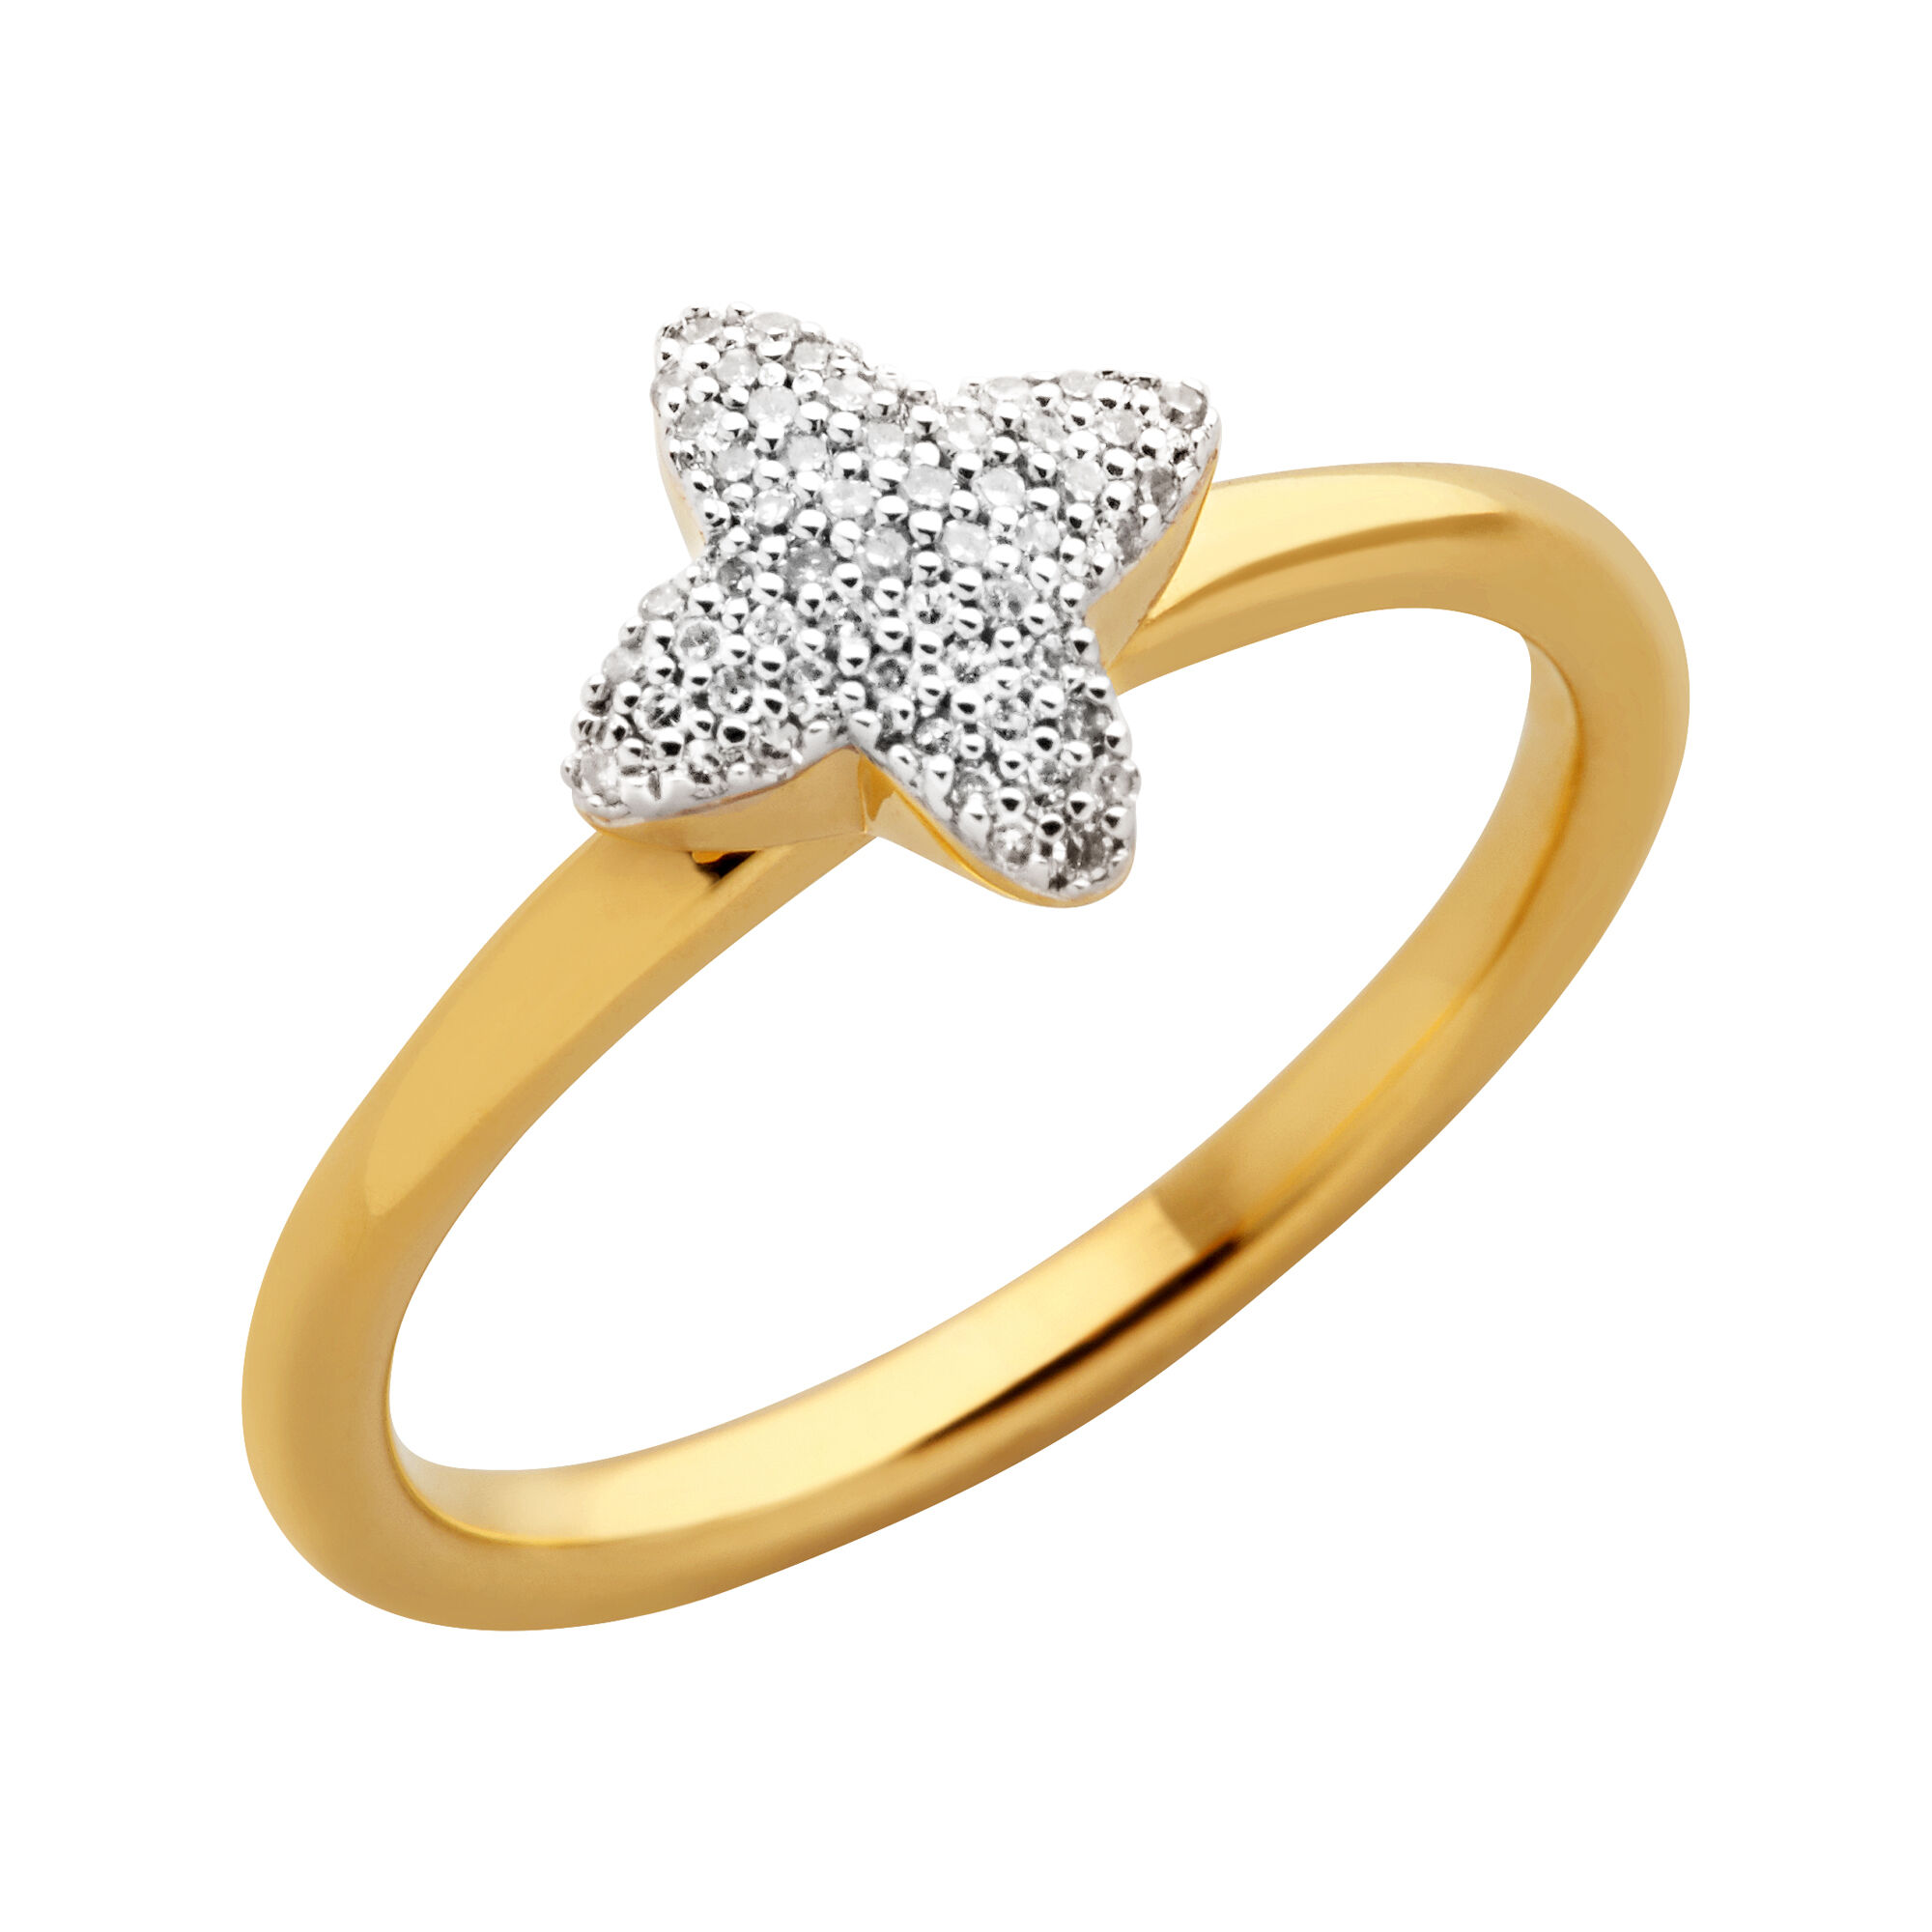 melanie diamond products claw katsalidis ring rhombus four